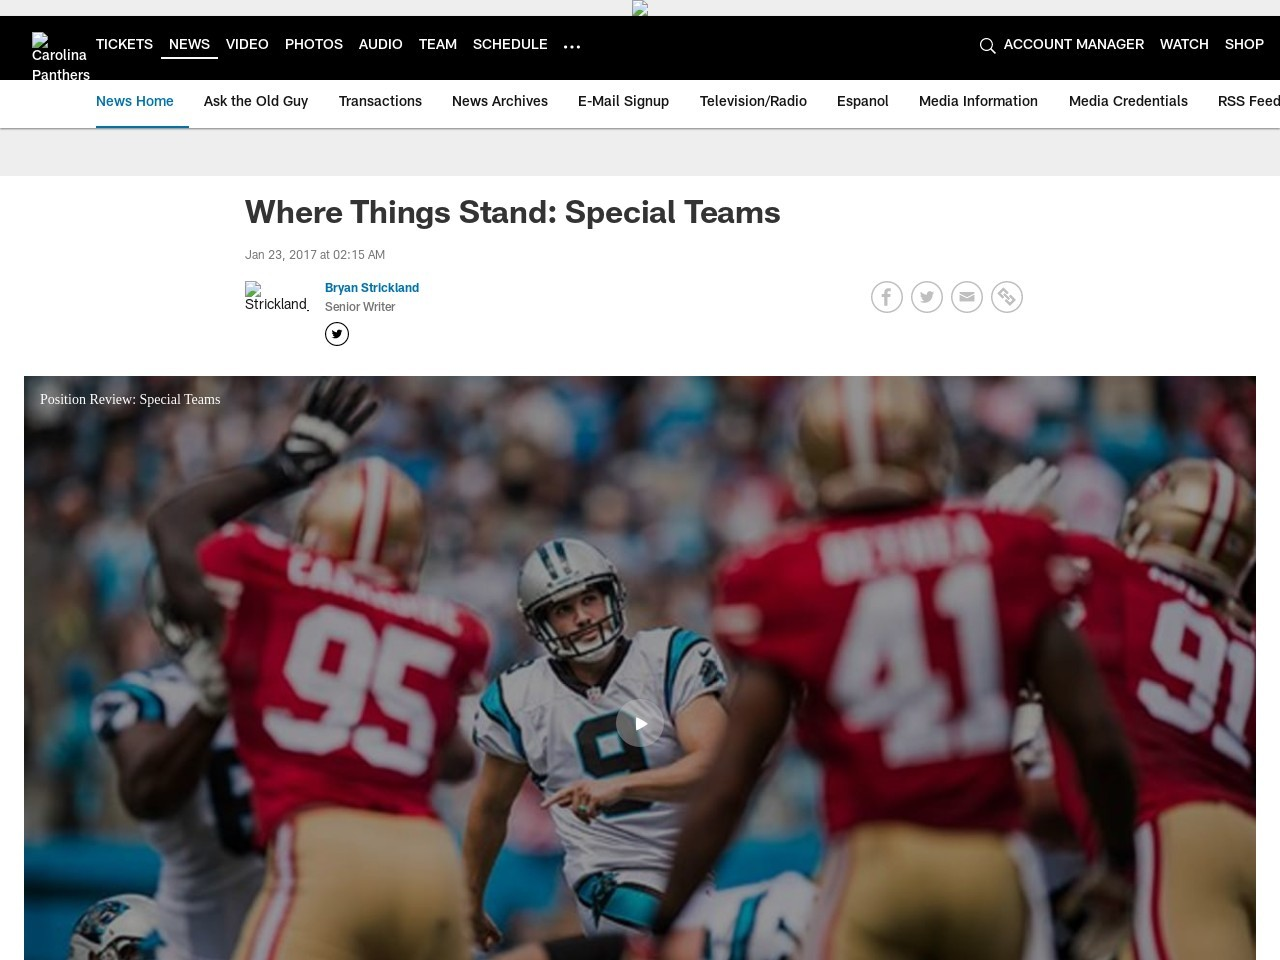 Where Things Stand: Special Teams